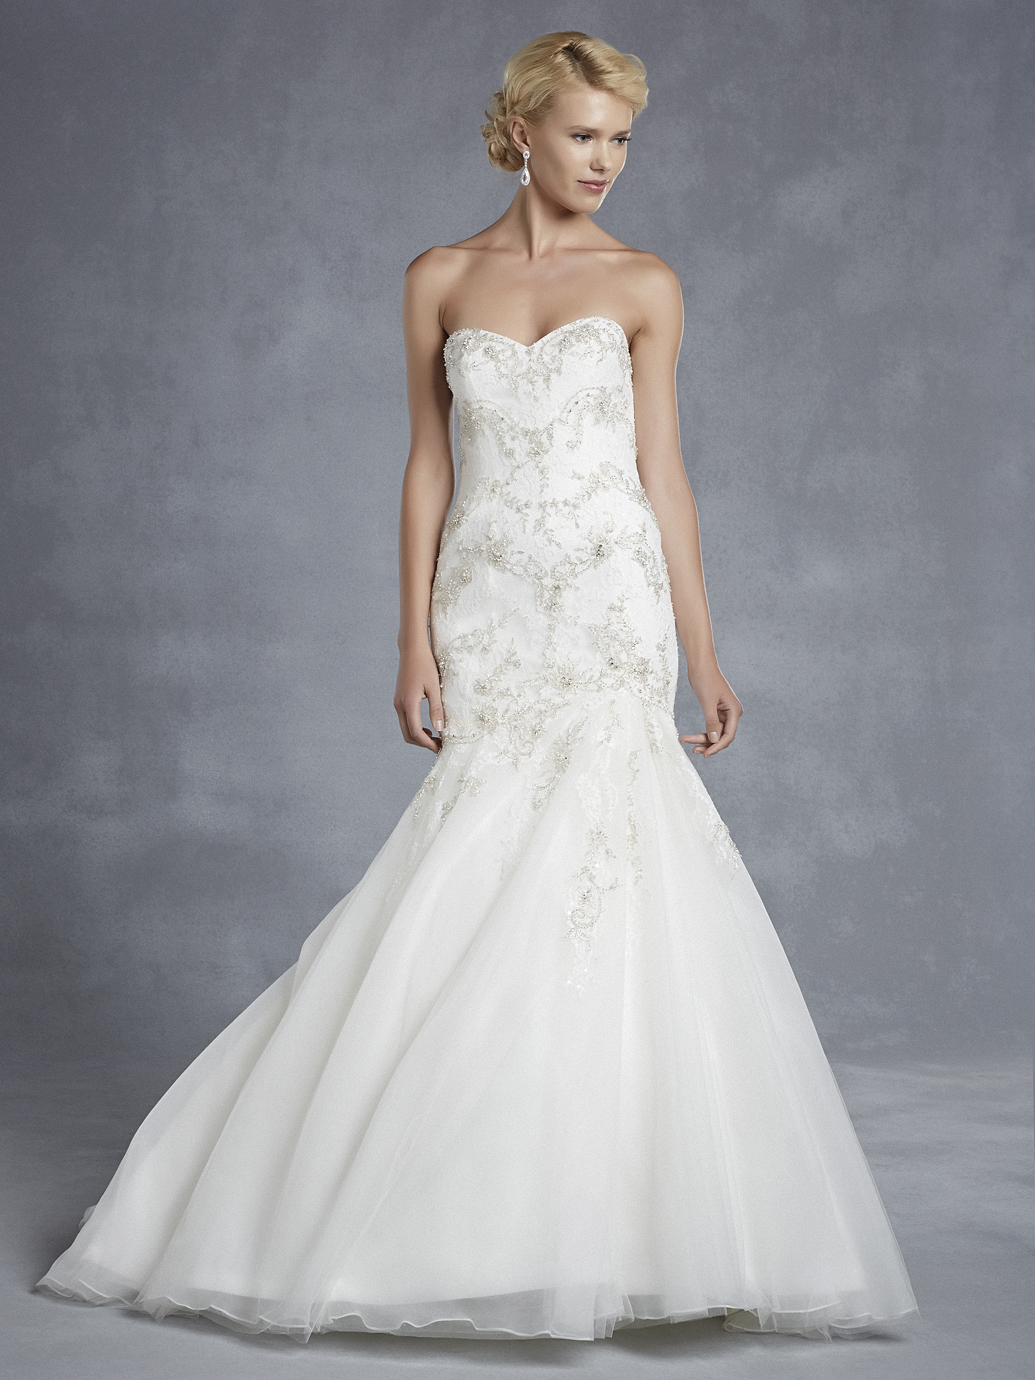 Sale gowns mias bridal tailoring for Wedding dress sample sale houston